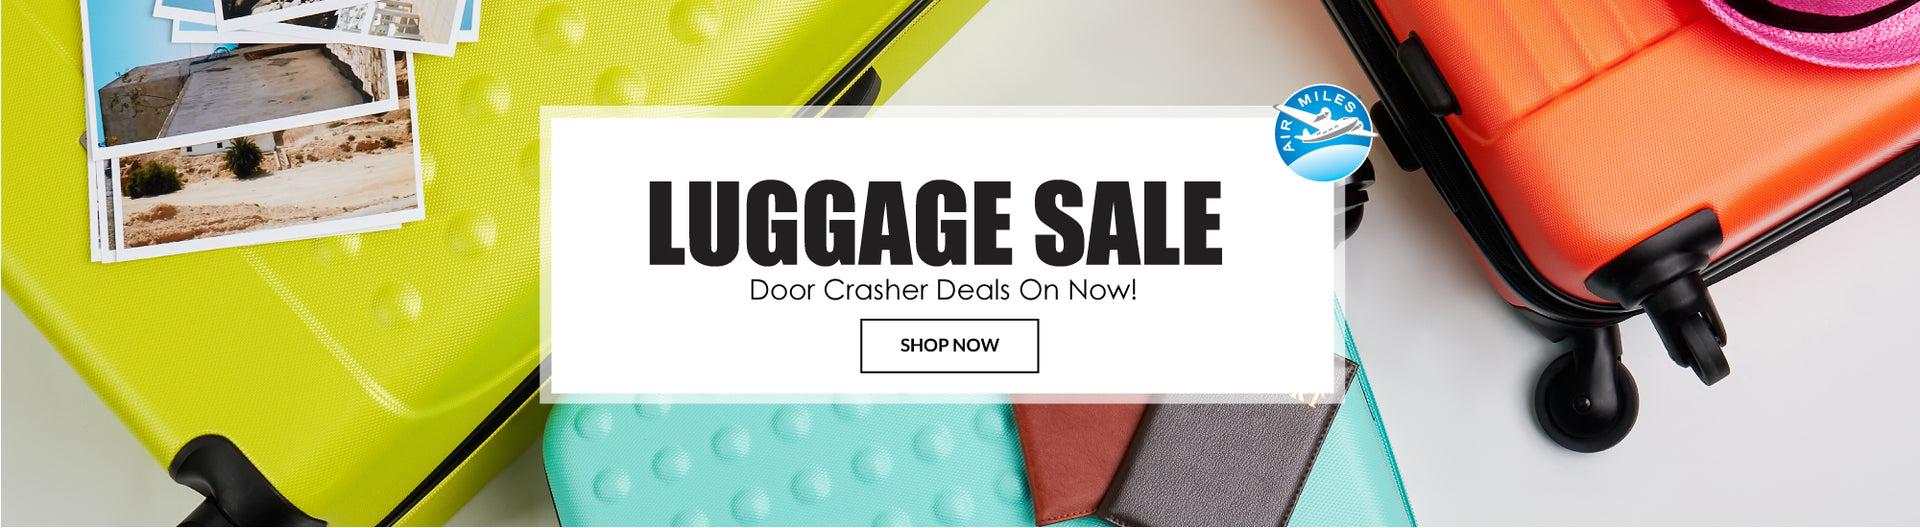 Luggage Sale - Canada Luggage Depot